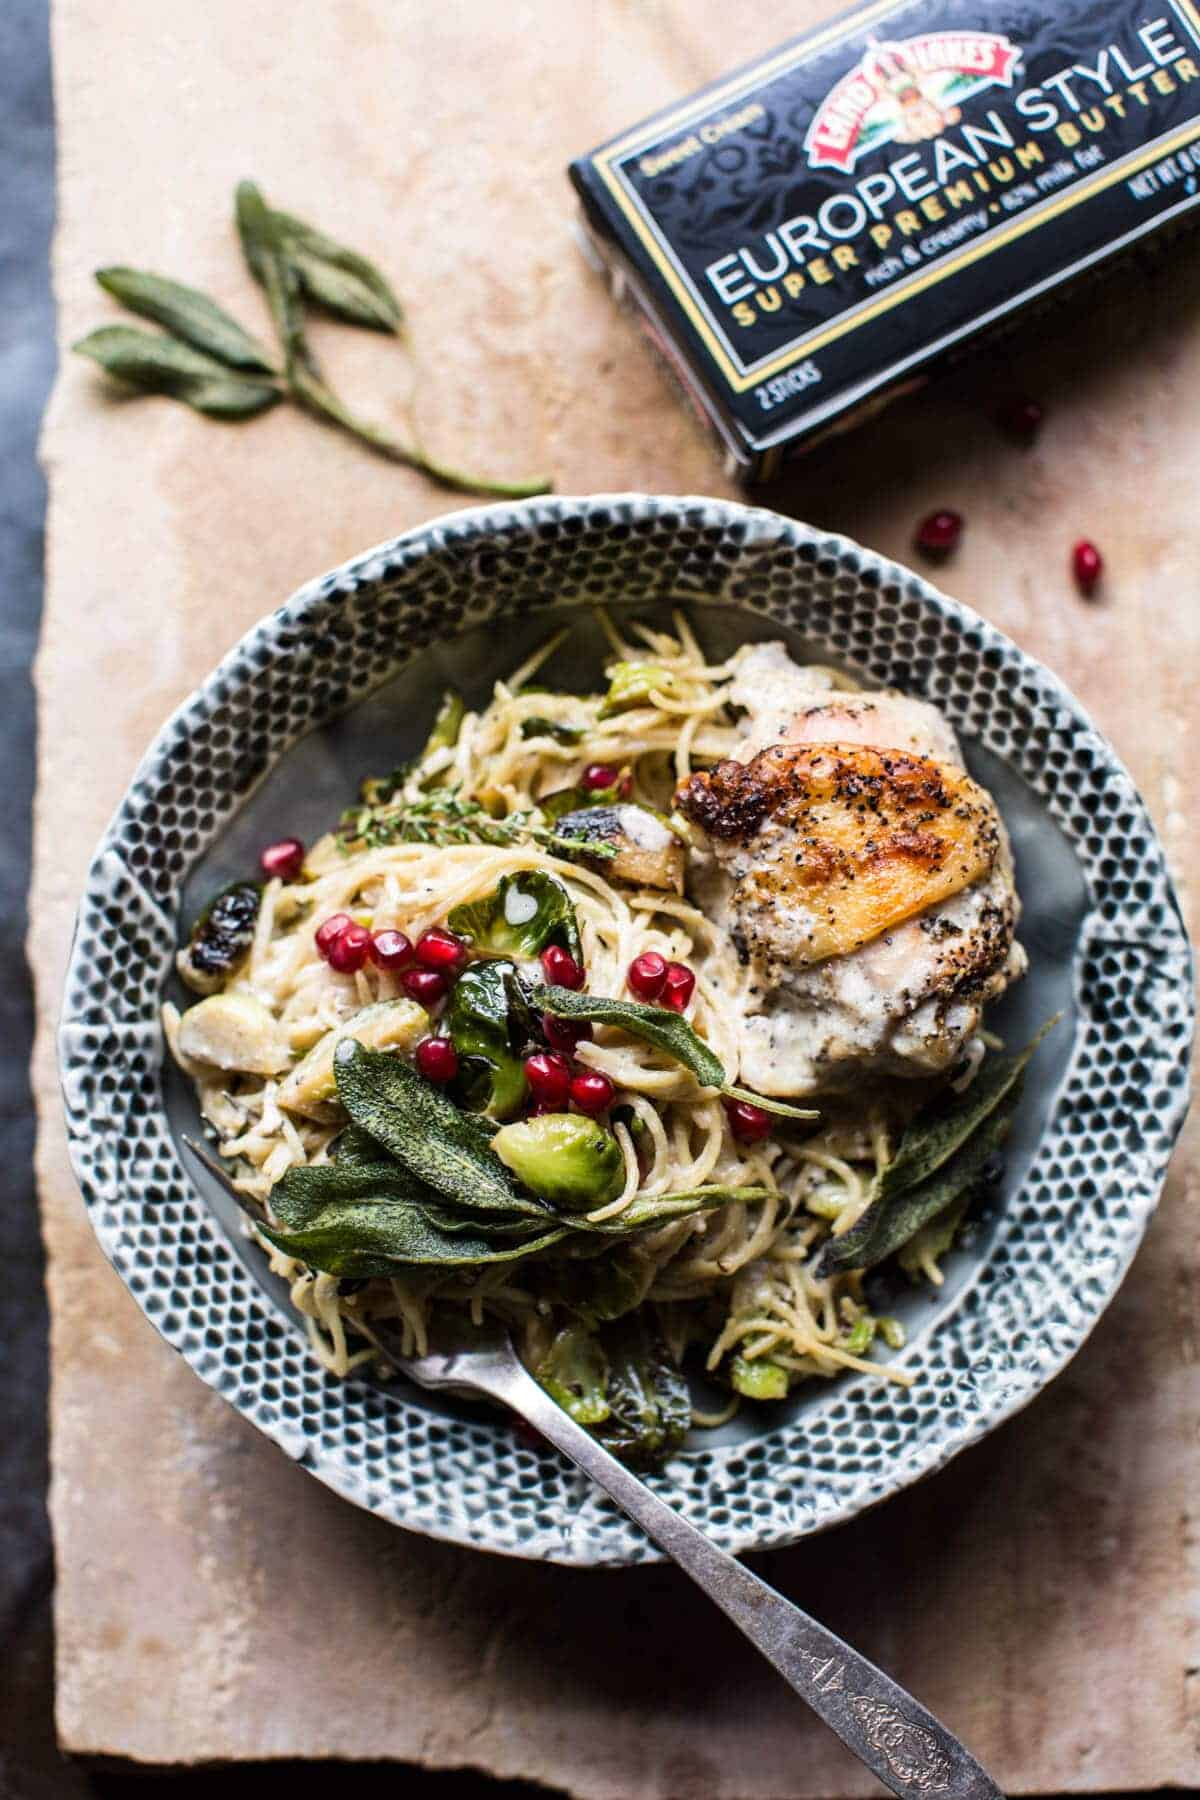 Sage Butter Lemon Roasted Chicken in Goat Milk With Brussels Sprout Pasta | halfbakedharvest.com @hbharvest